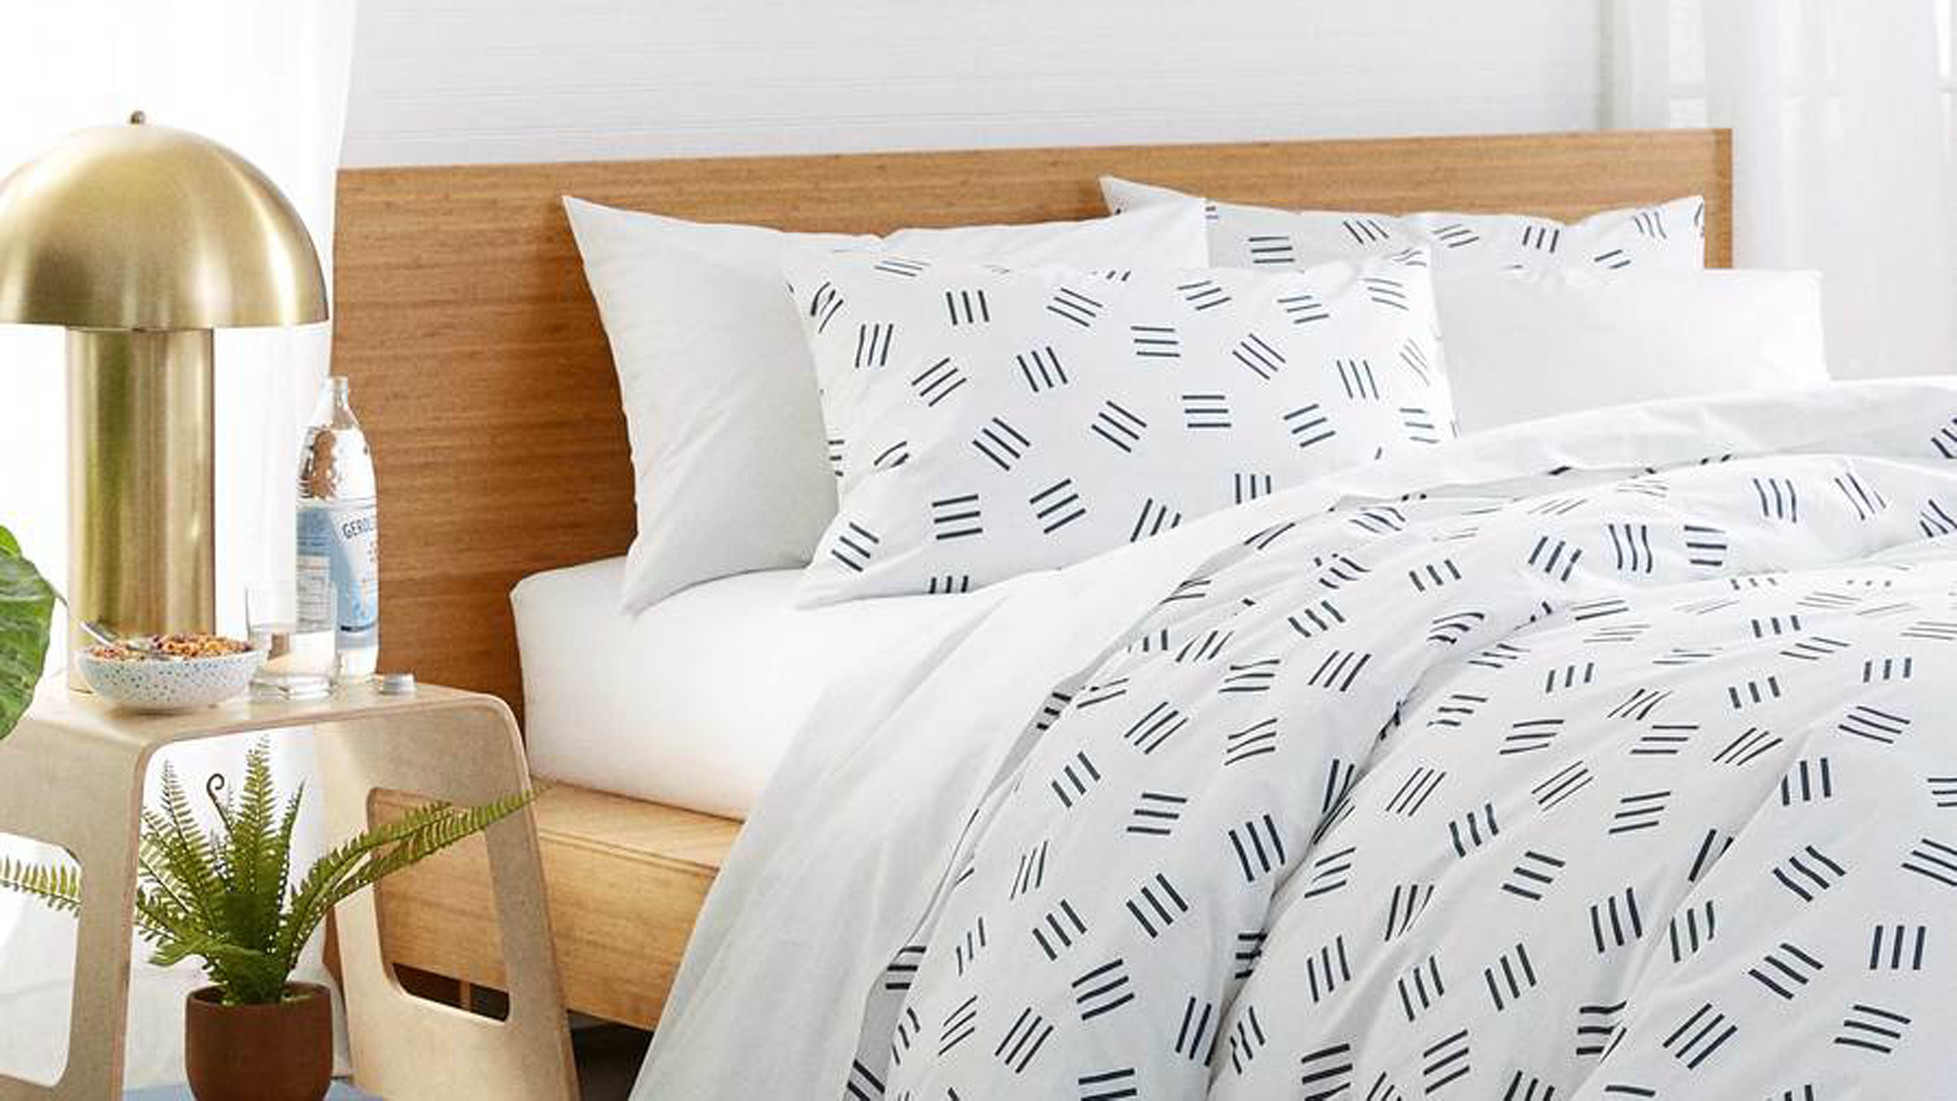 Parachute Boll And Branch Brooklinen Review Which Luxury Linens Are Worth The Price Cnn Underscored